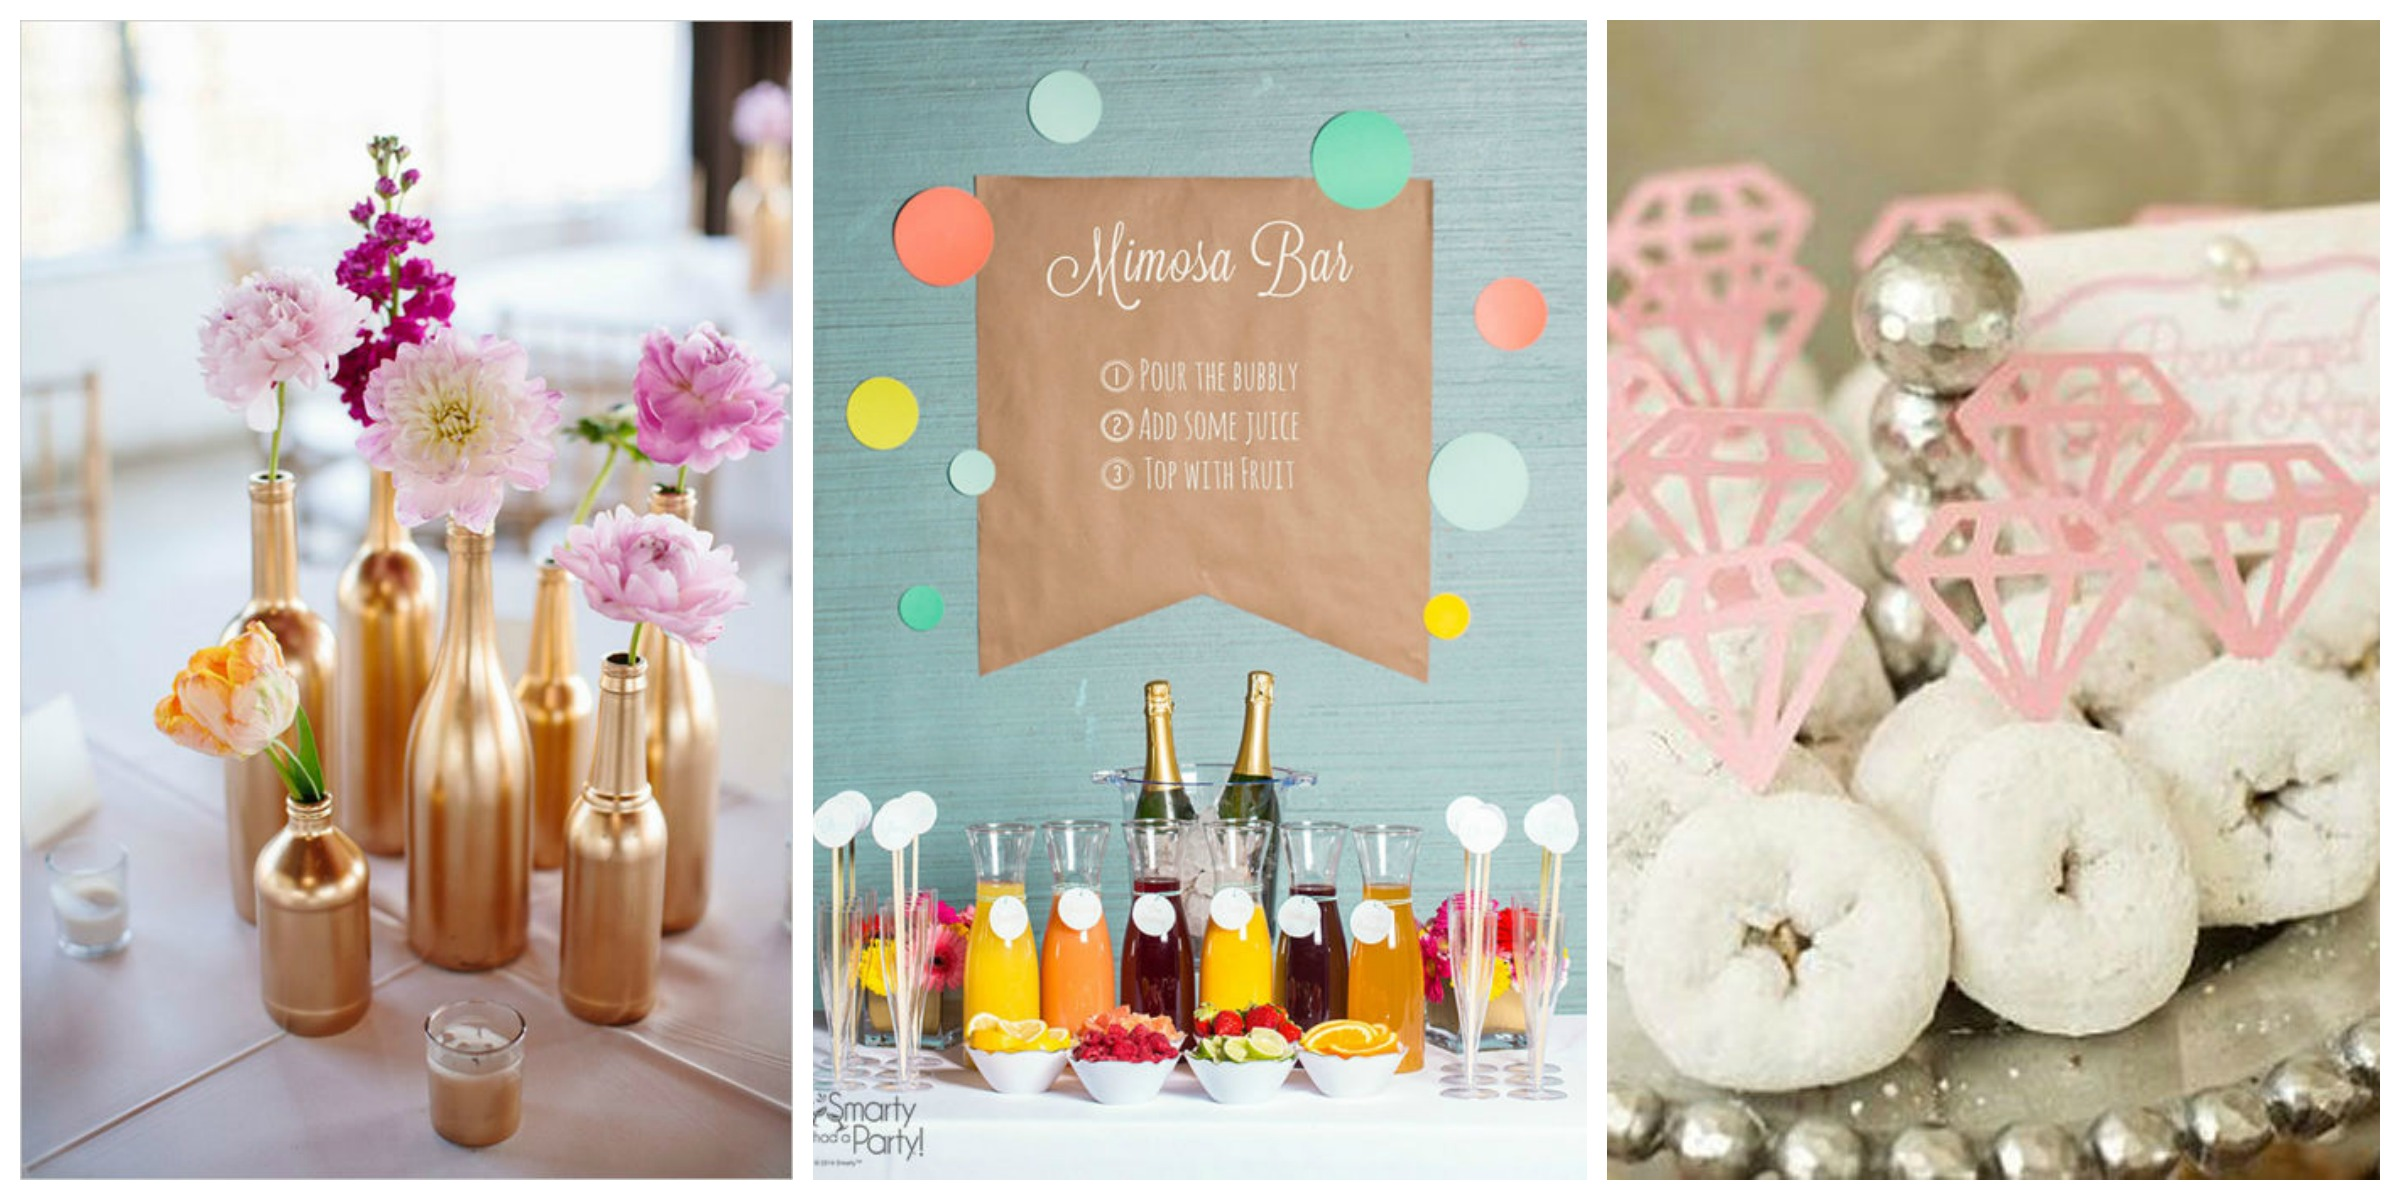 ideas fun themes food and decorating ideas for wedding showers